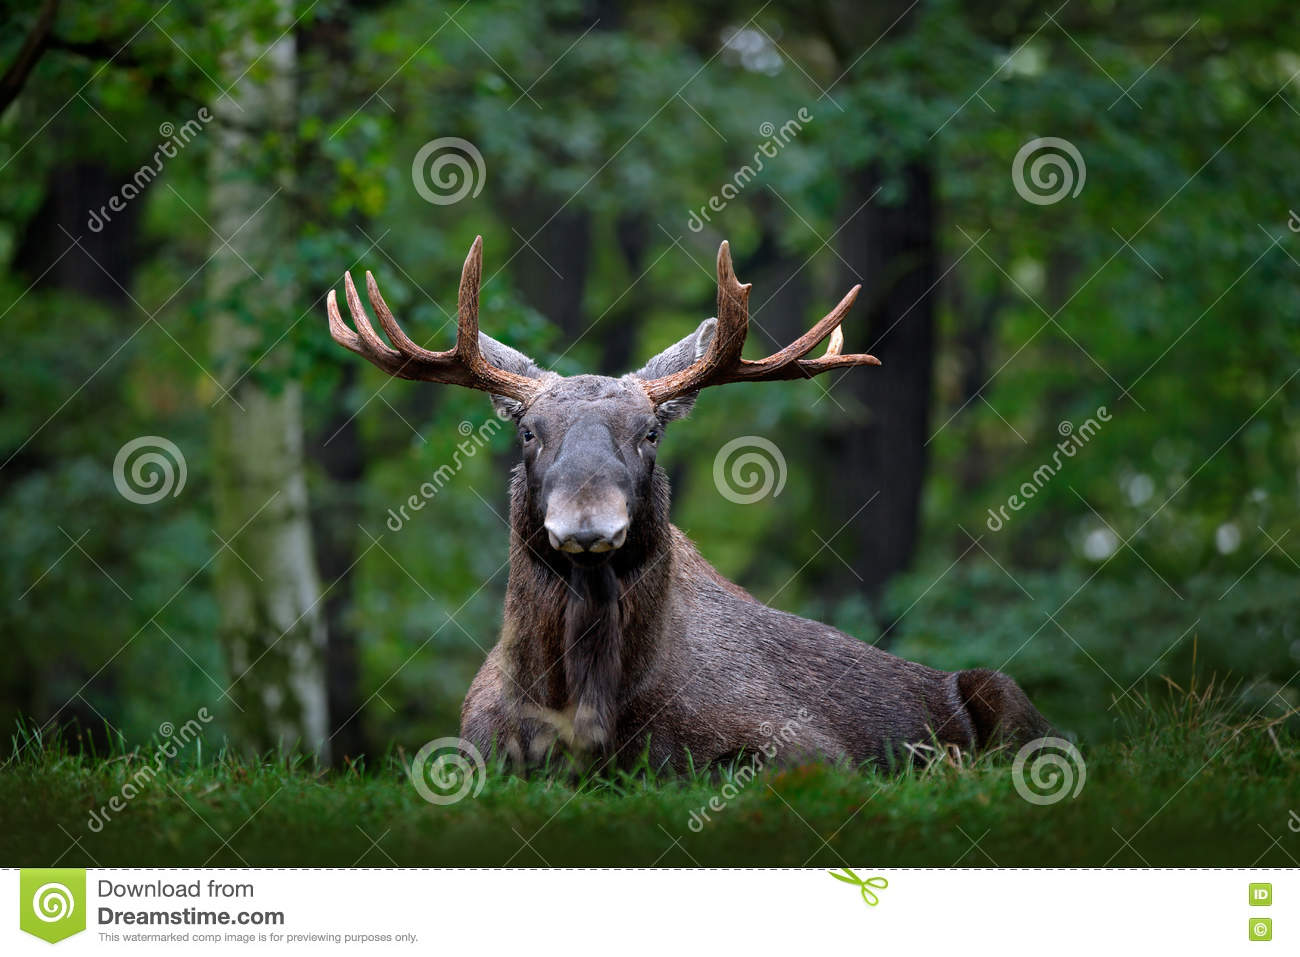 Moose, North America, or Eurasian elk, Eurasia, Alces alces in the dark forest during rainy day. Beautiful animal in the nature ha